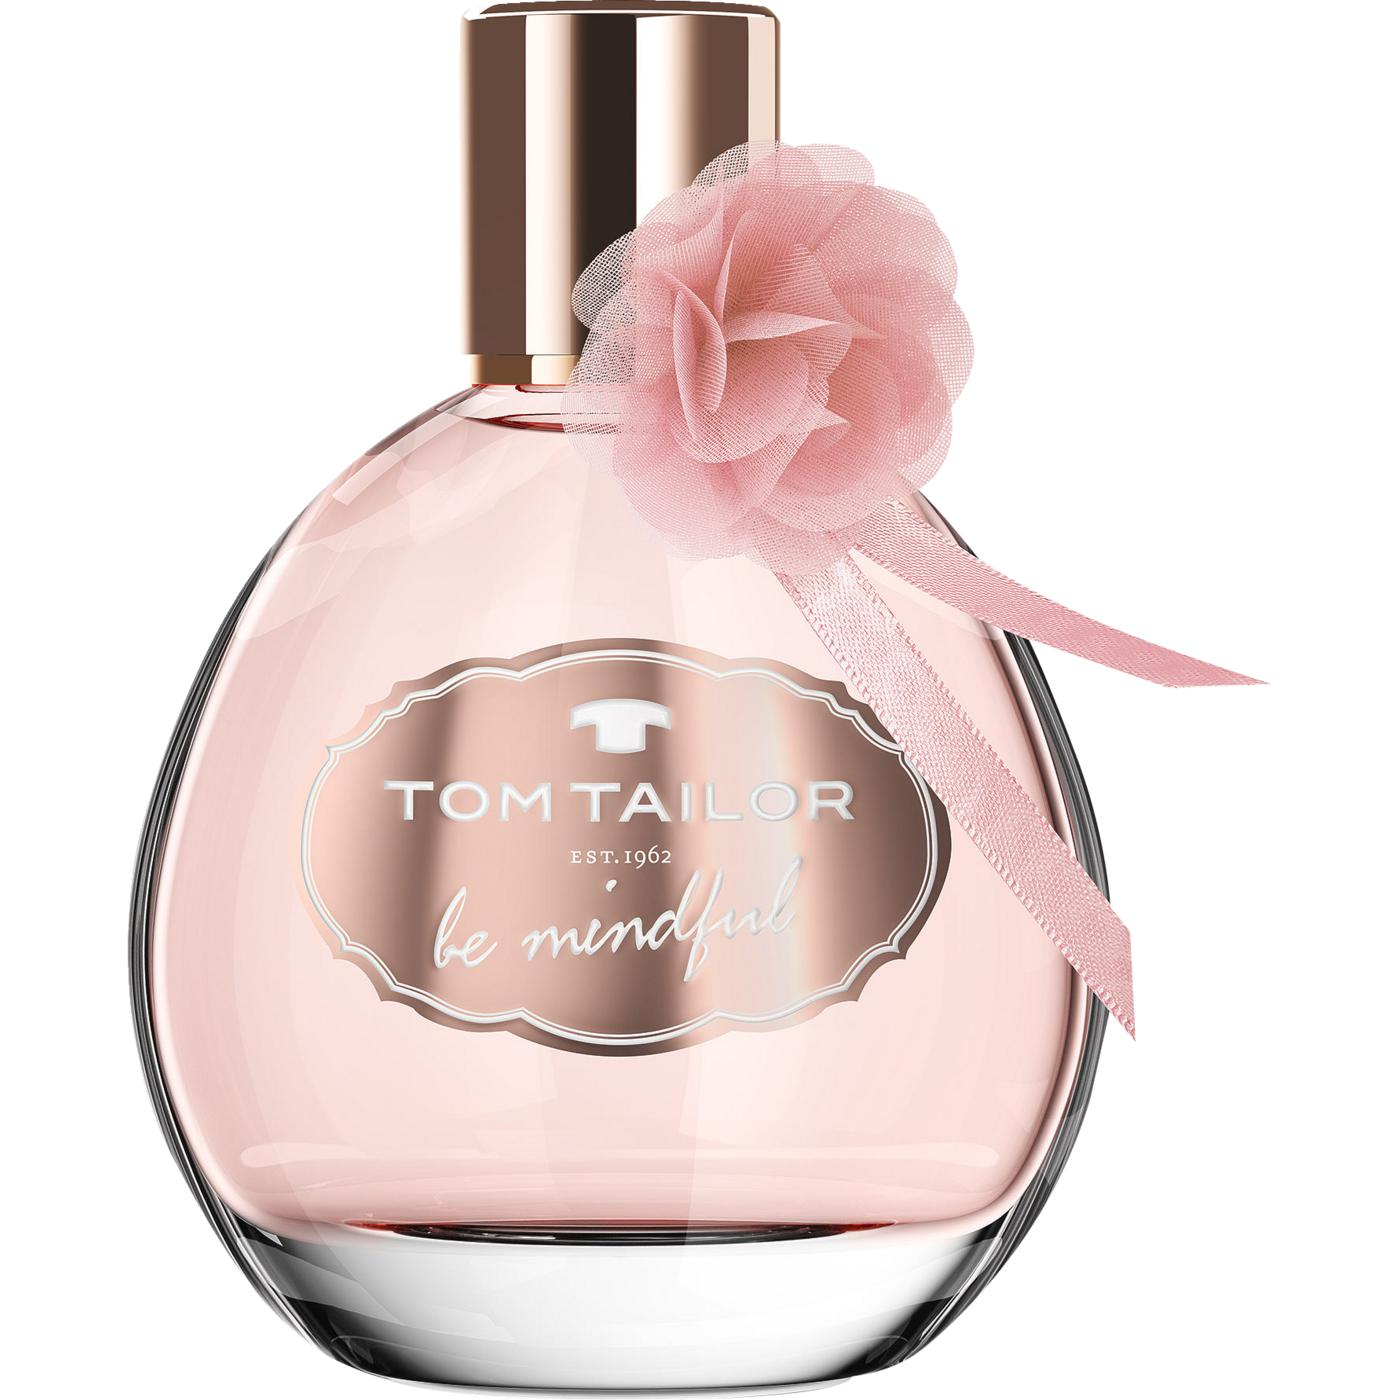 Www Tom Tailor Be Mindful Woman Eau De Toilette